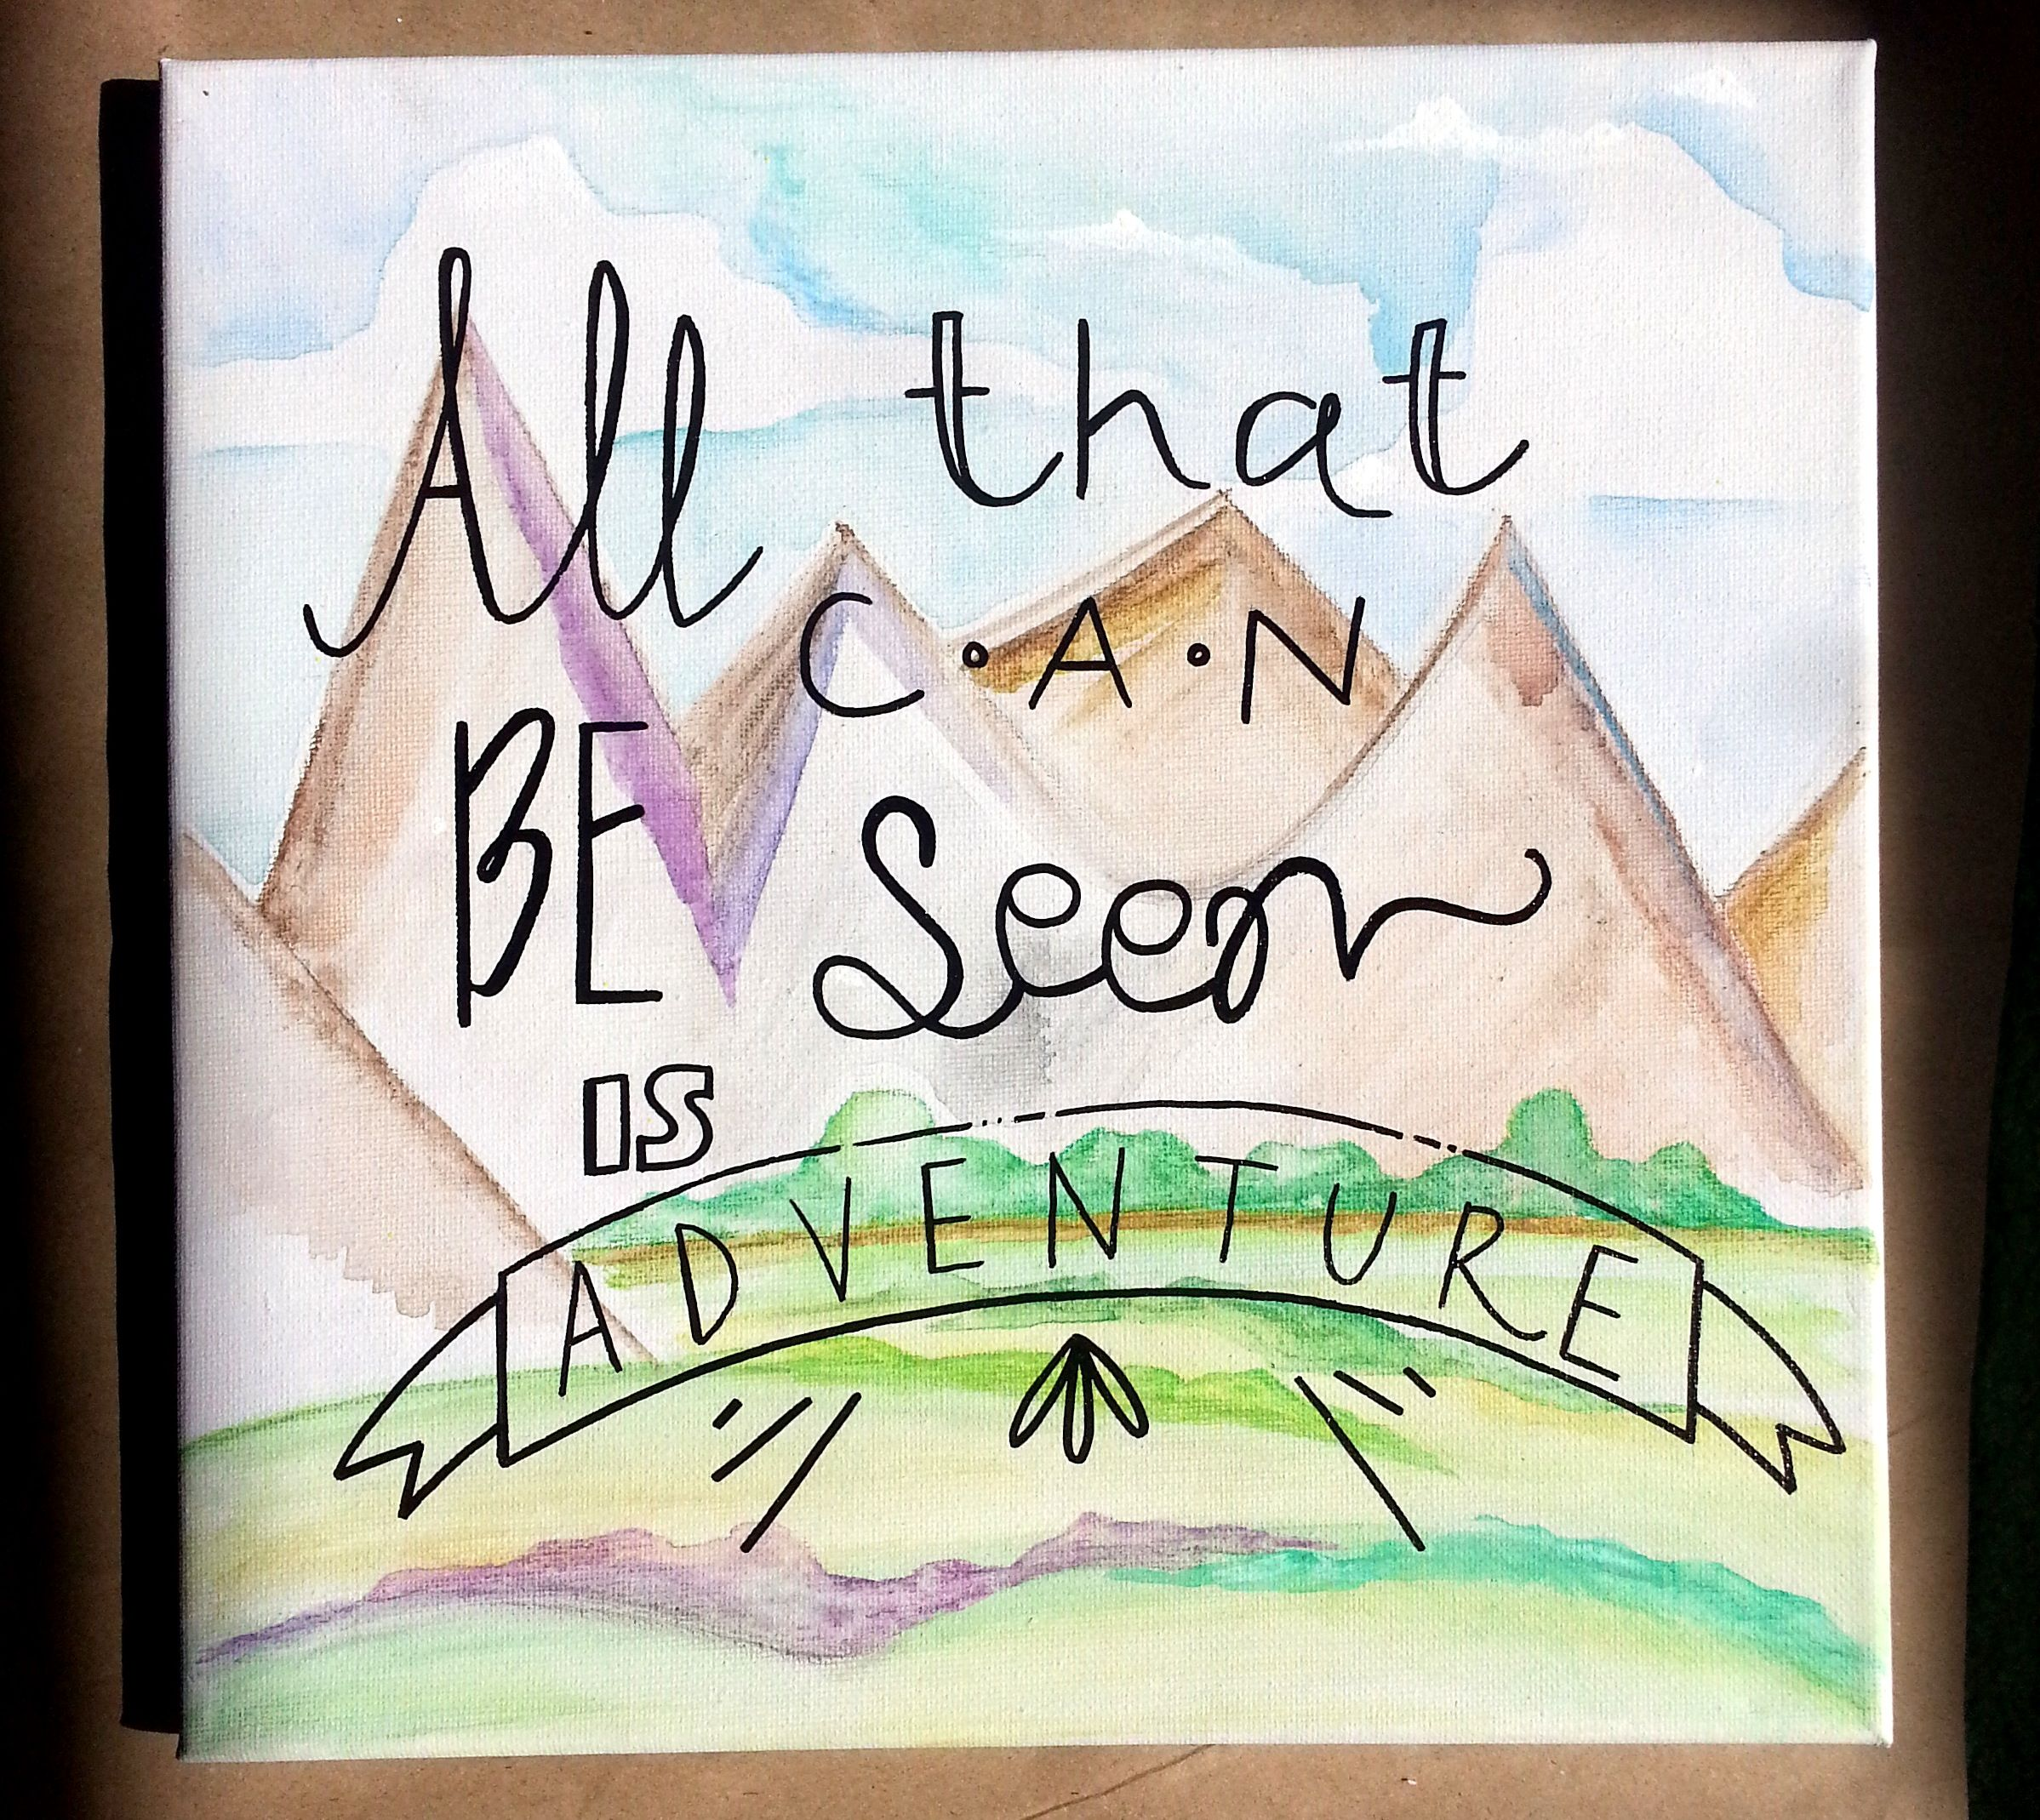 """""""all that can be seen is adventure"""" #art #words #painting #watercolor #acrylic #quotes #canvas #wanderlust #explore #travel #etsy"""